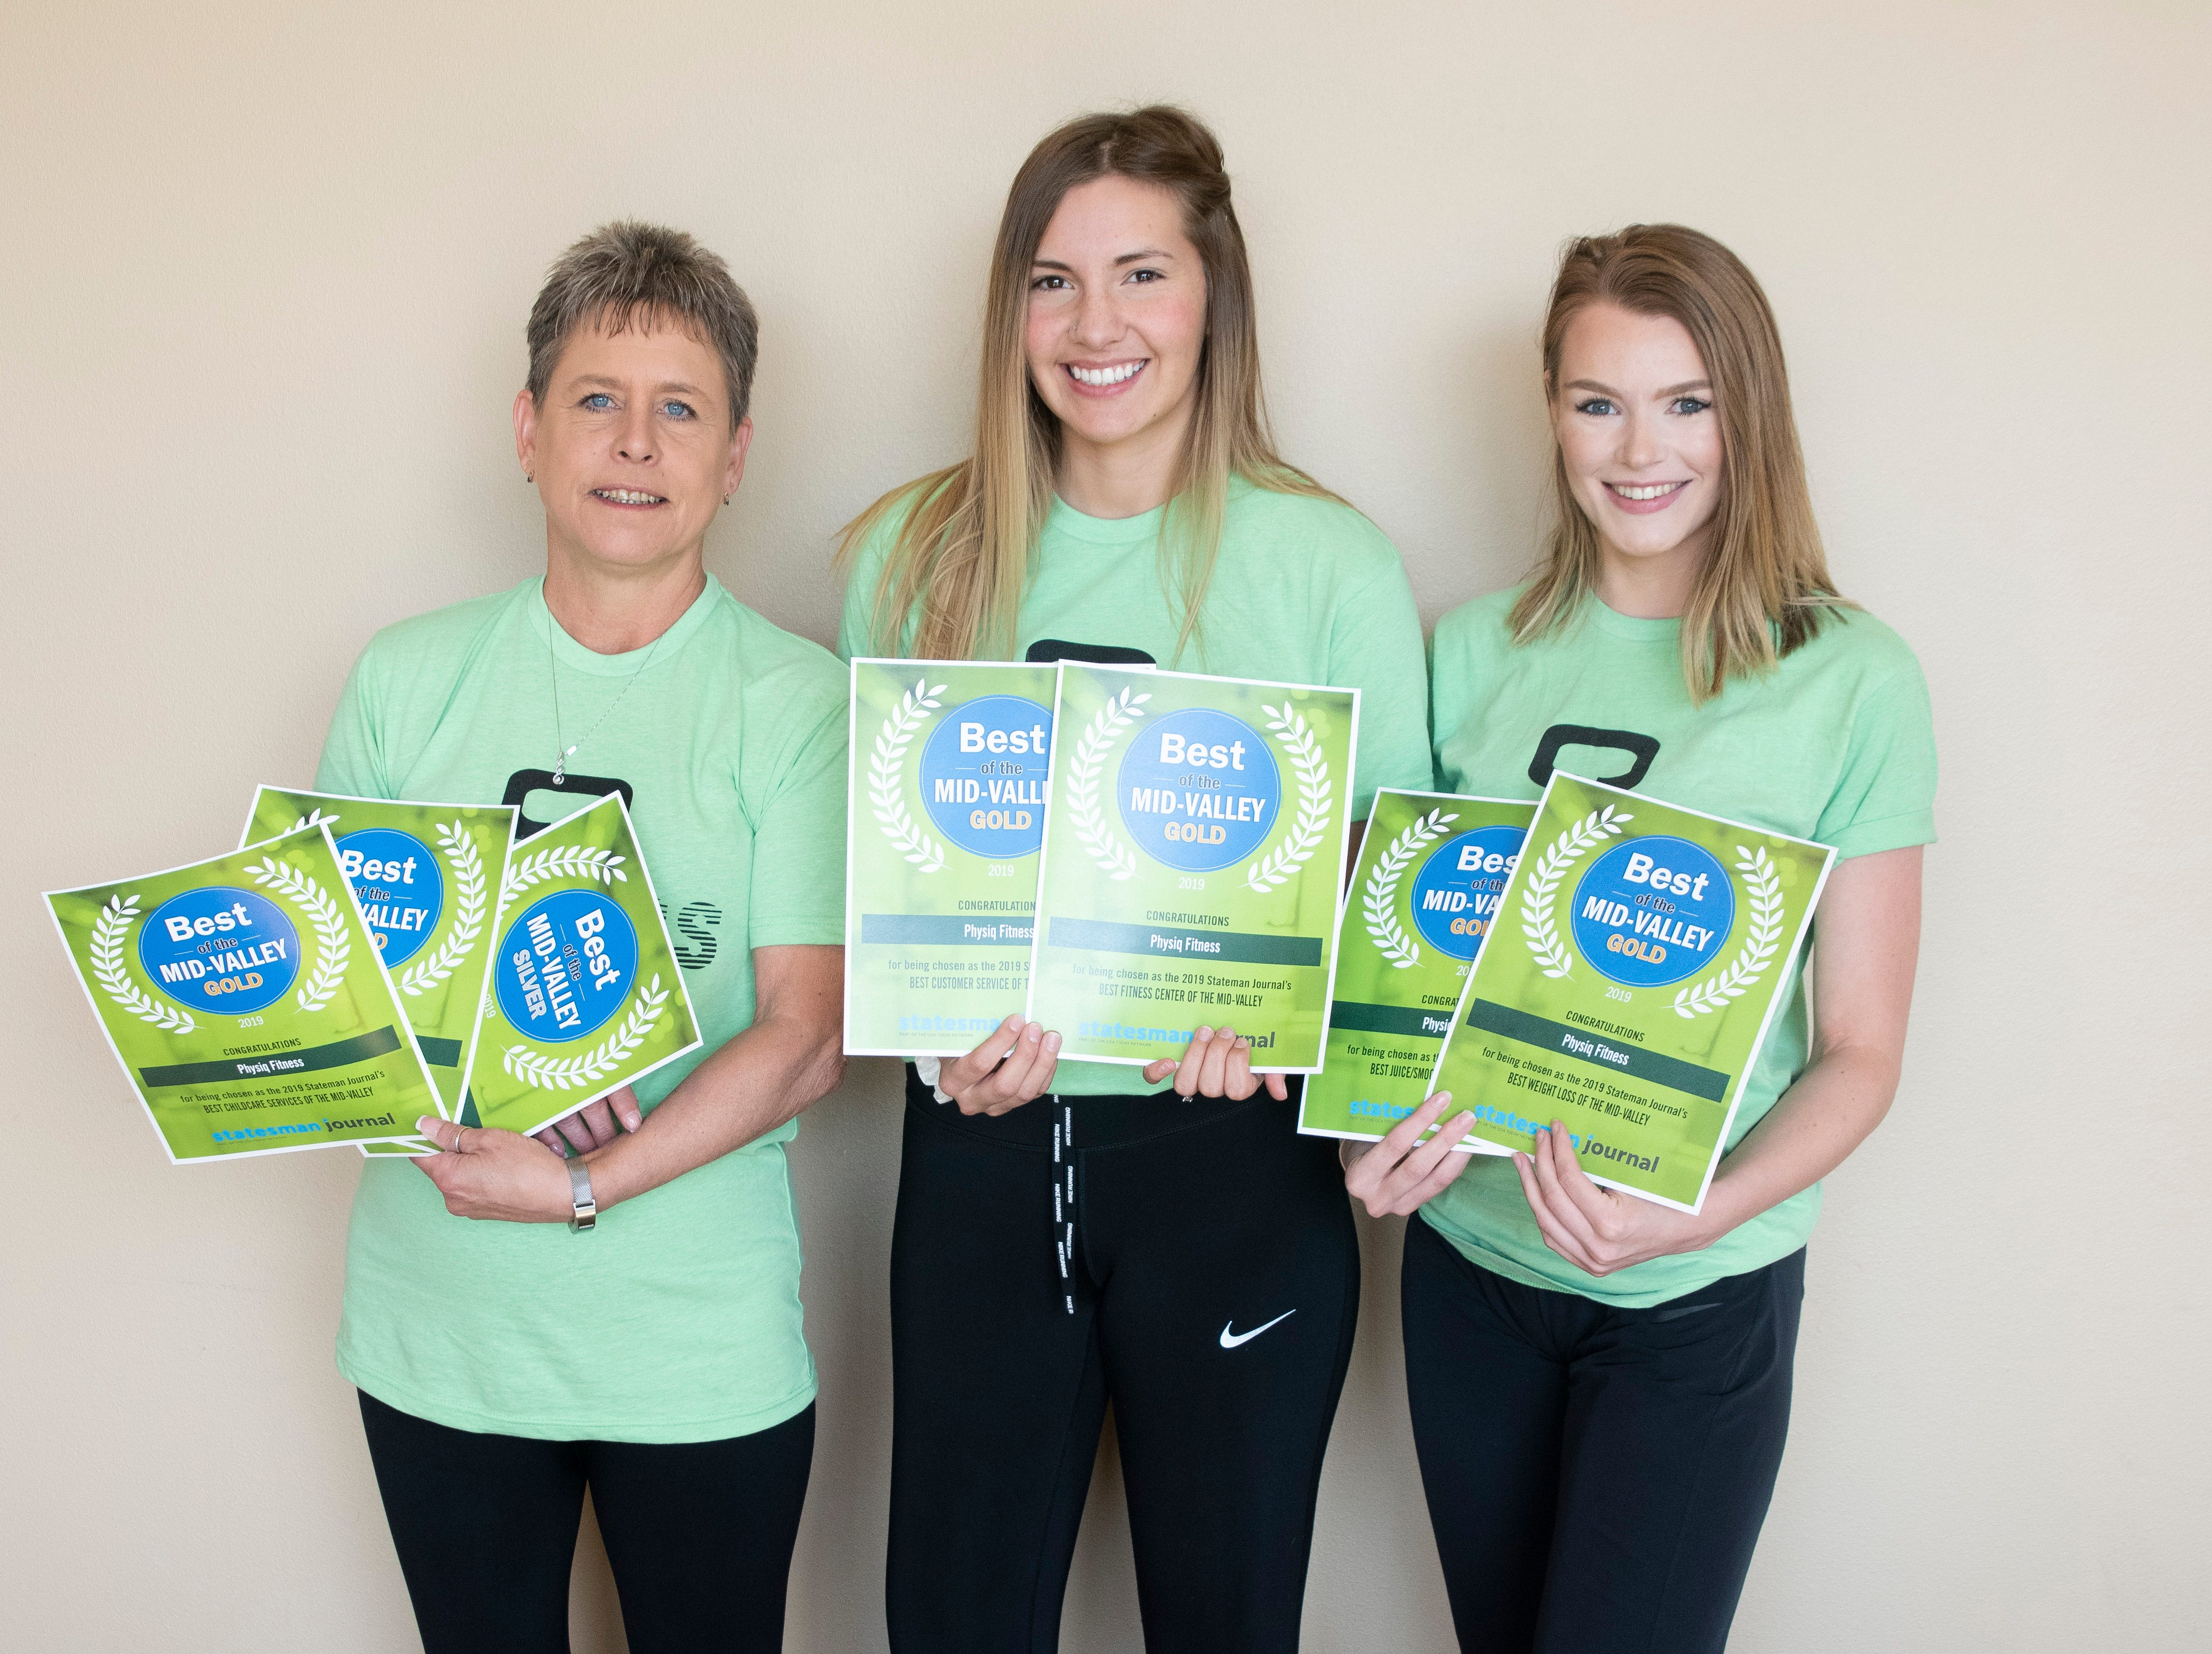 Physiq Fitness won gold for Best Fitness Center, Best Customer Service, Best Weight Loss, Best Juice/Smoothie, Best Childcare Services in the 2019 Best of the Mid-Valley.